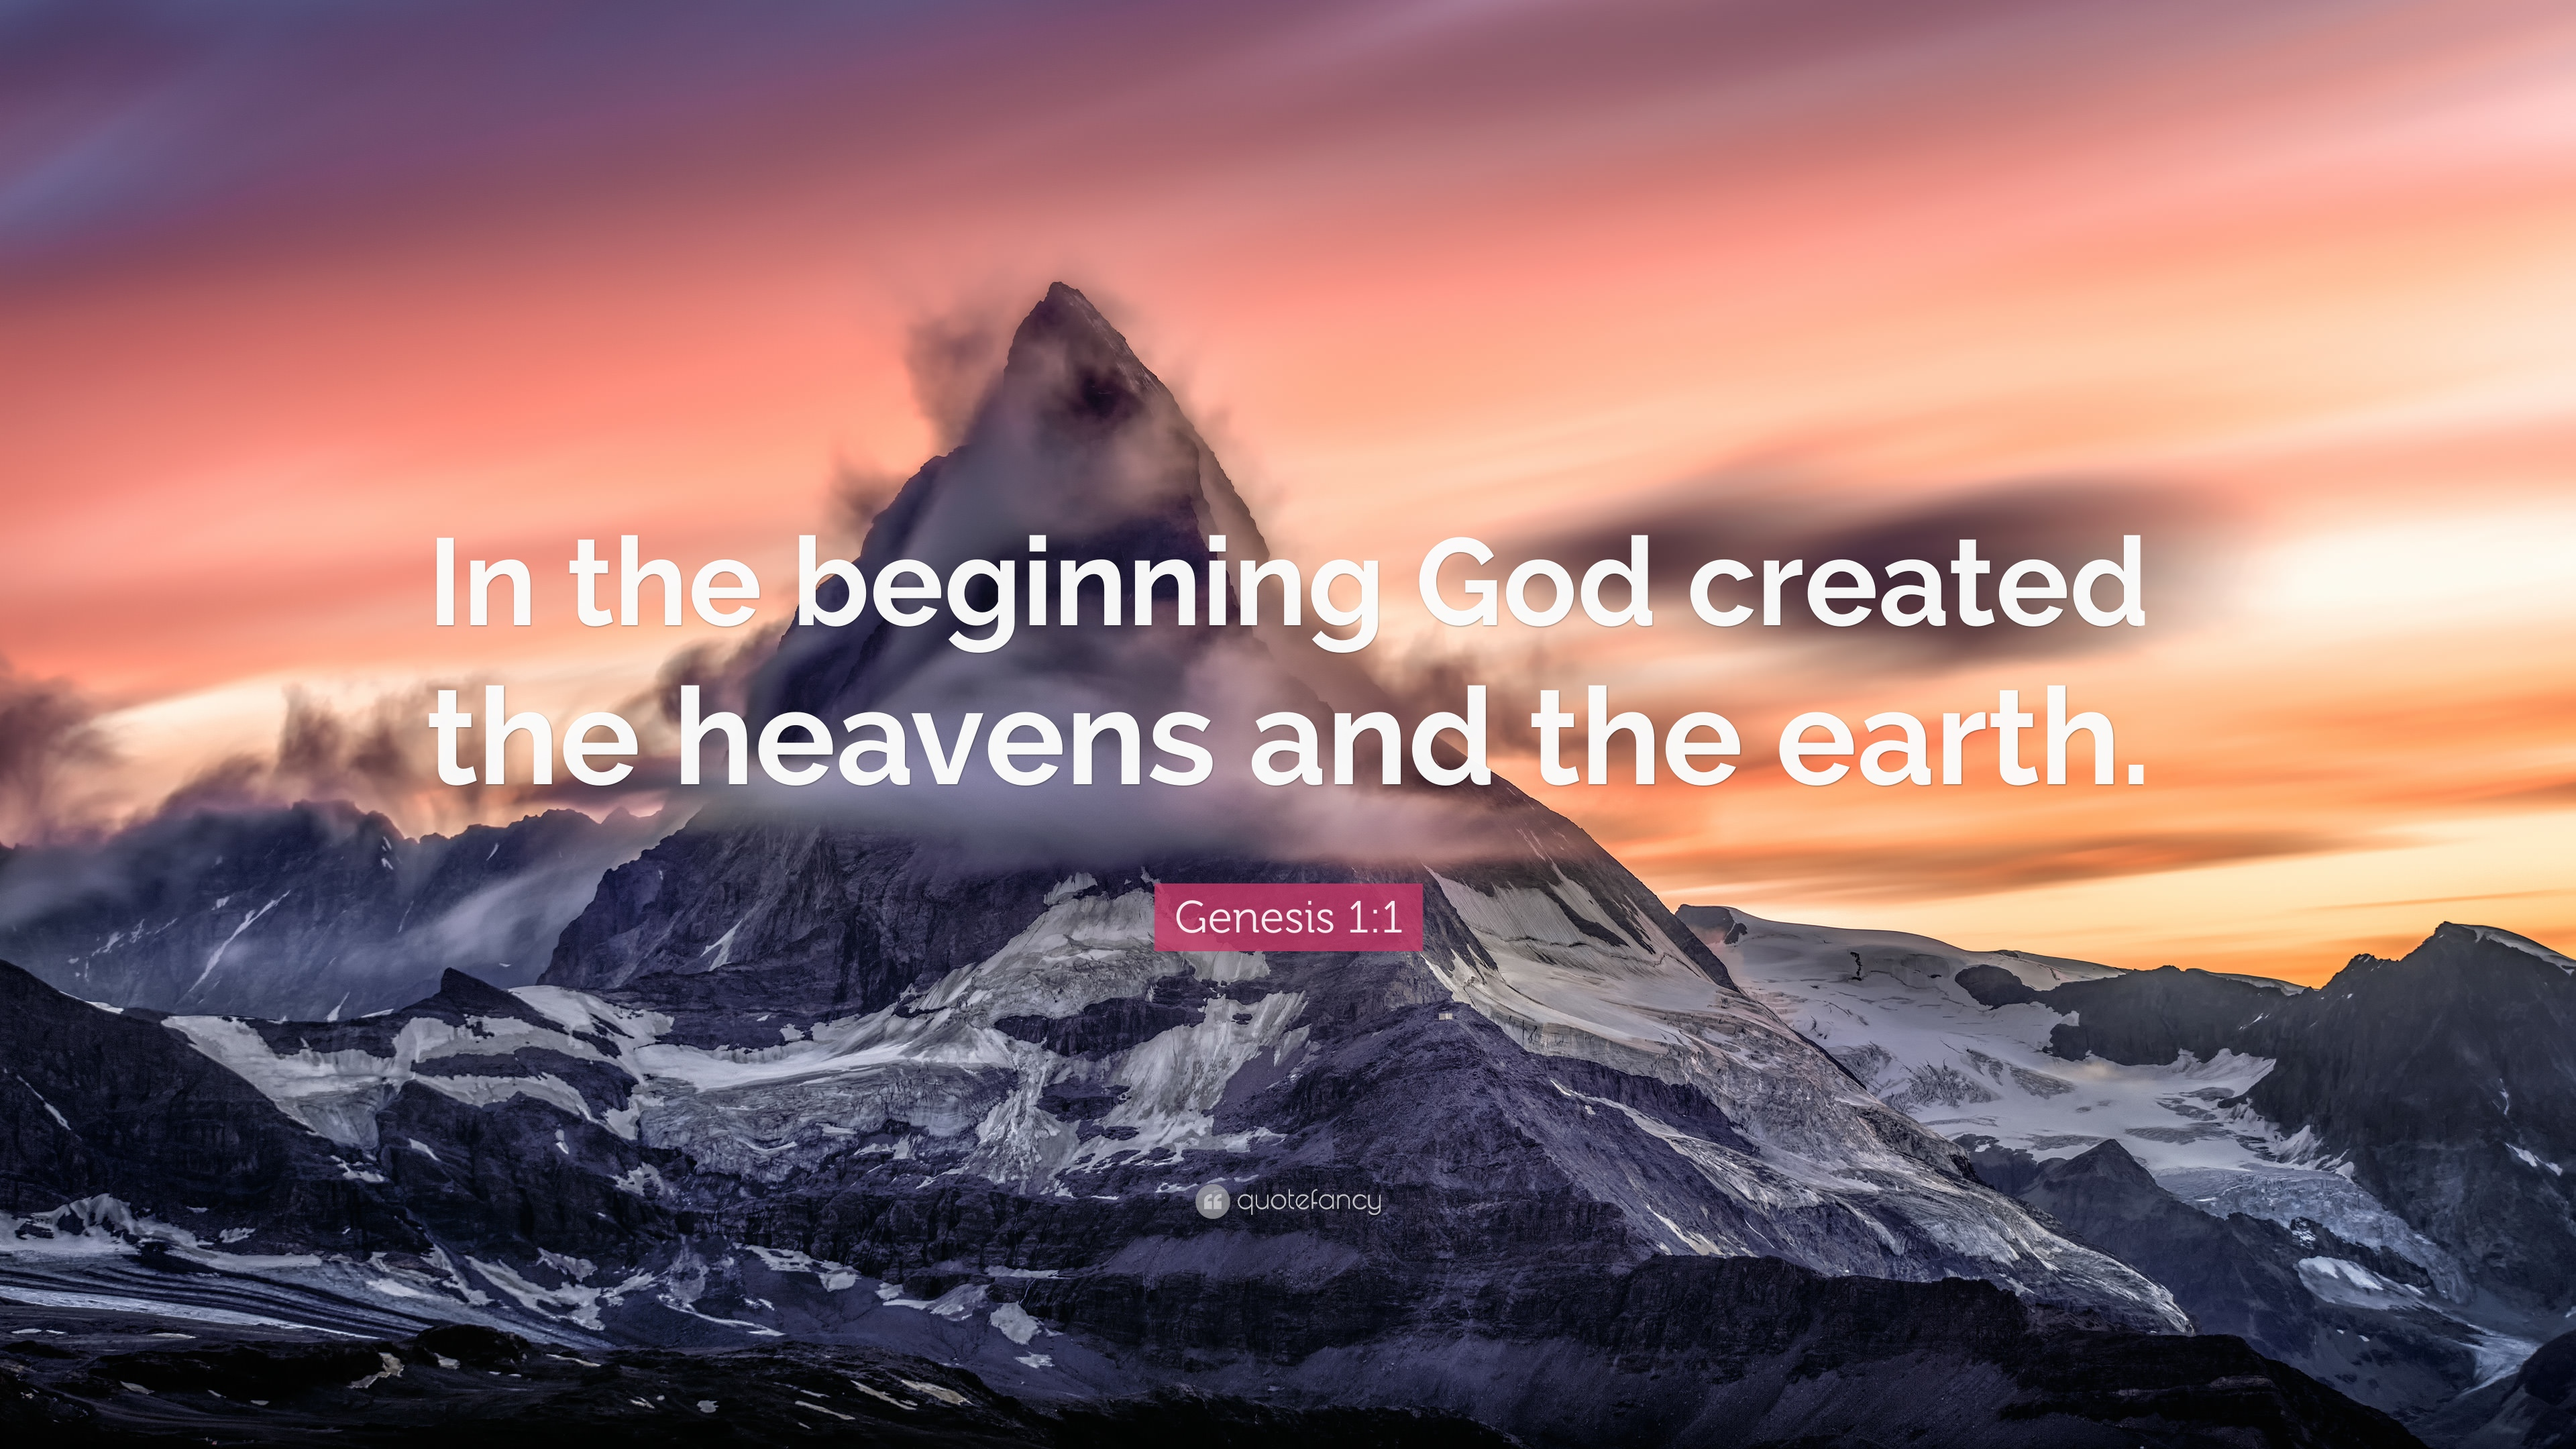 Genesis 1 1 Quote In The Beginning God Created The Heavens And The Earth 15 Wallpapers Quotefancy